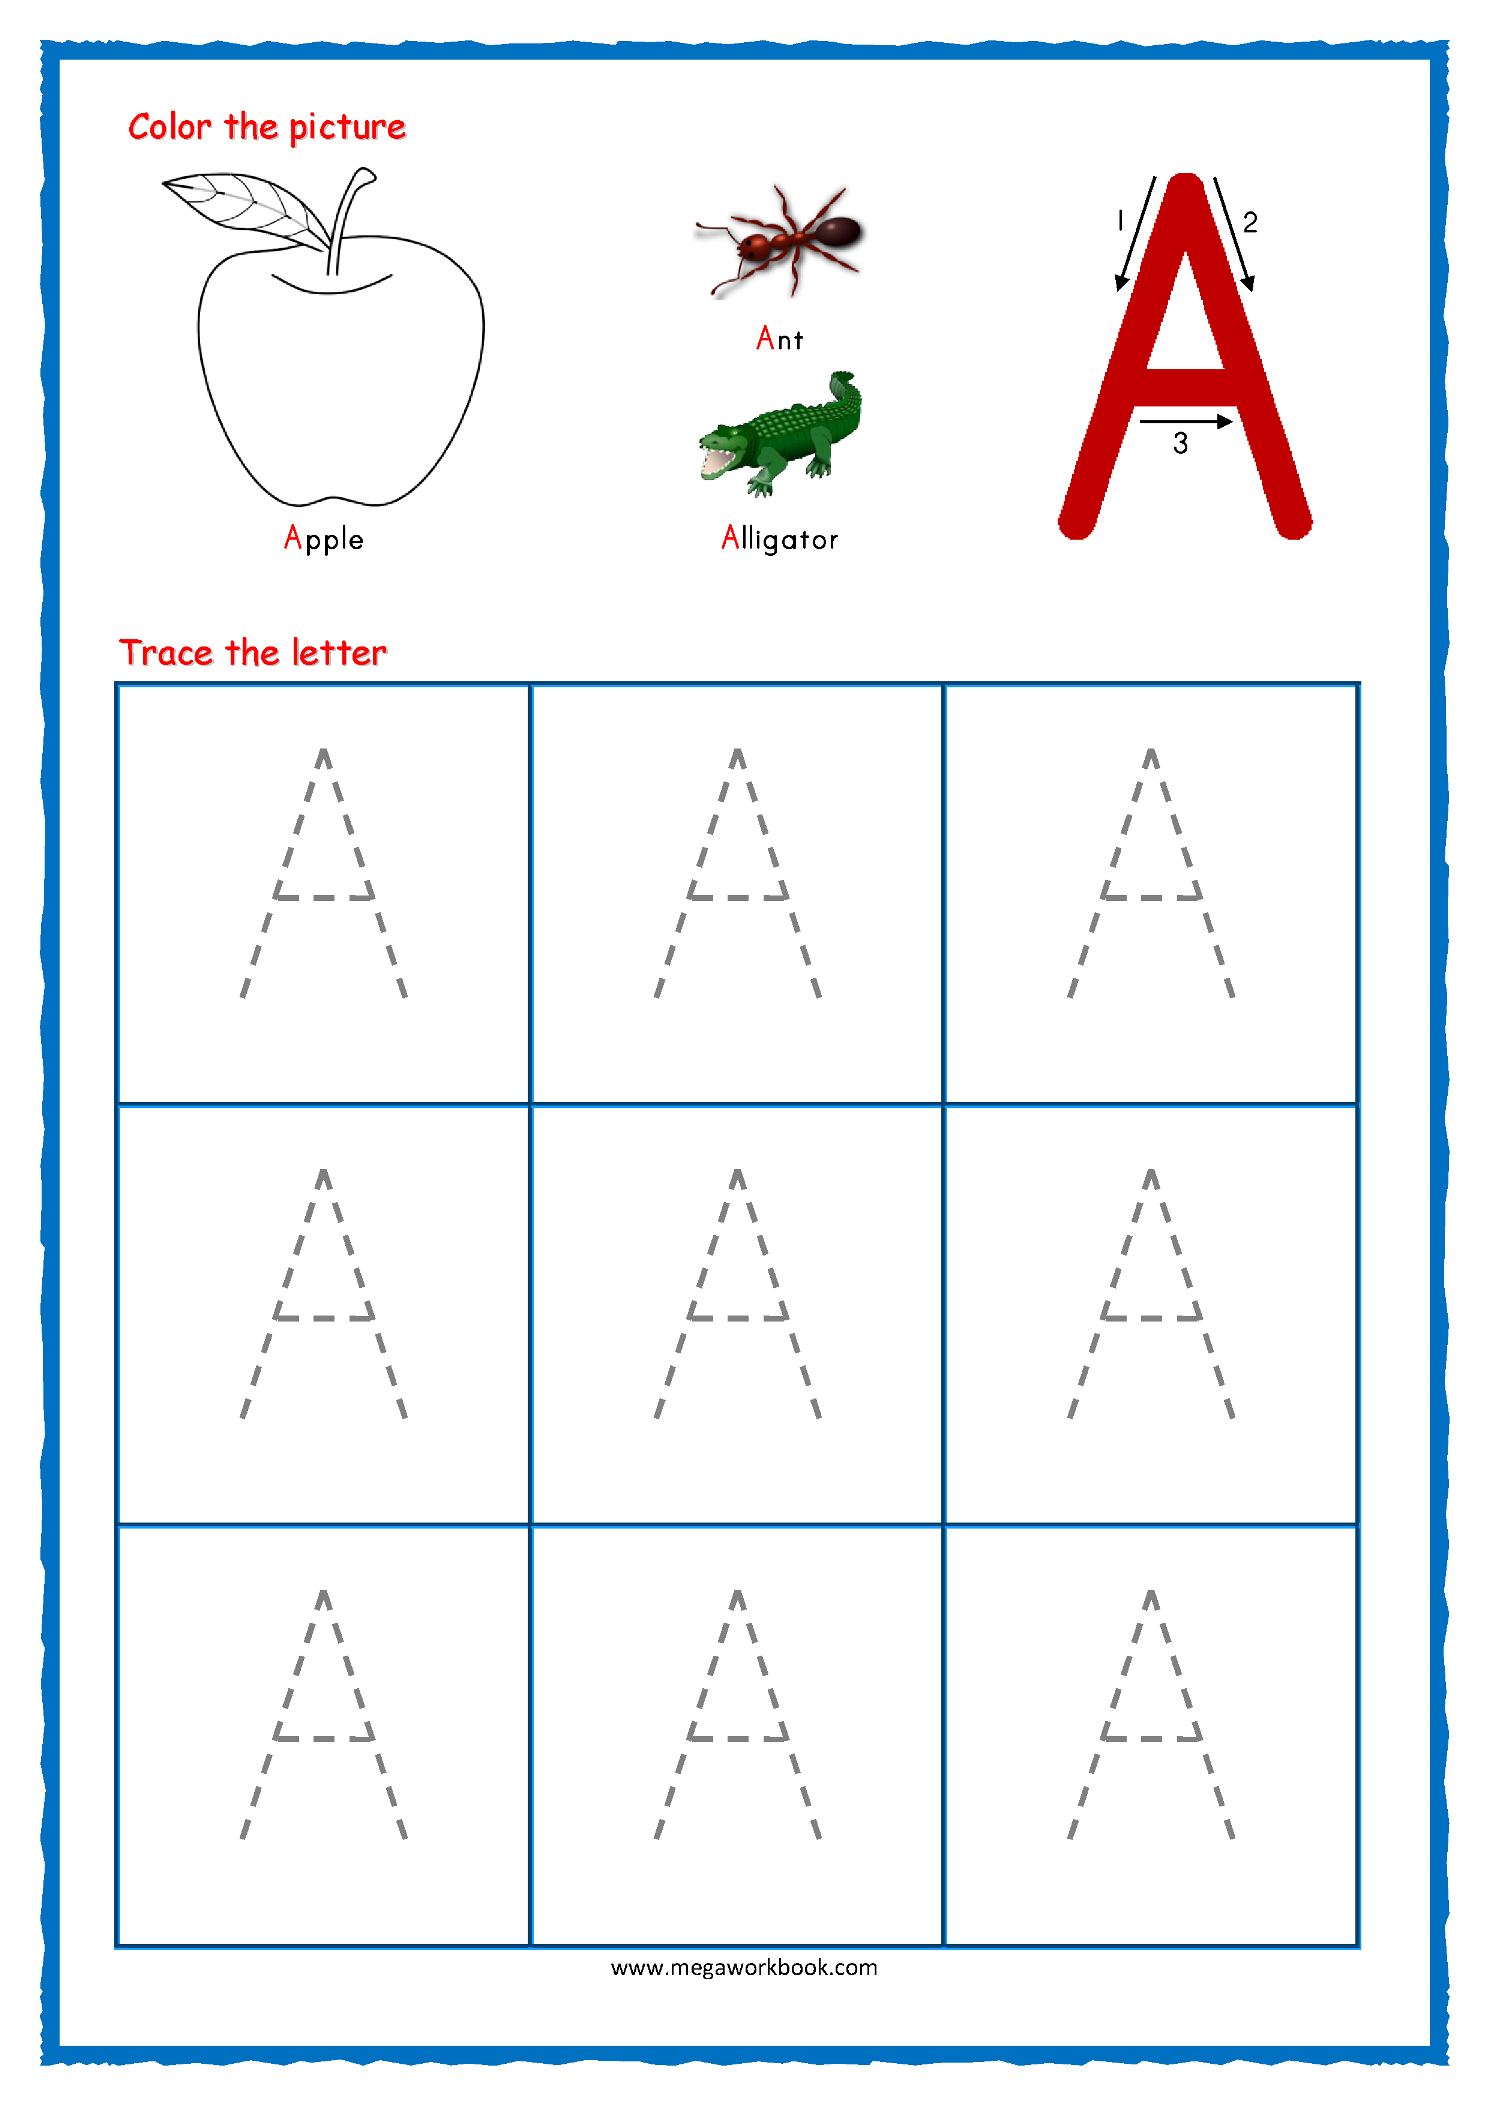 Tracing Letters - Alphabet Tracing - Capital Letters in Alphabet Tracing Online Free